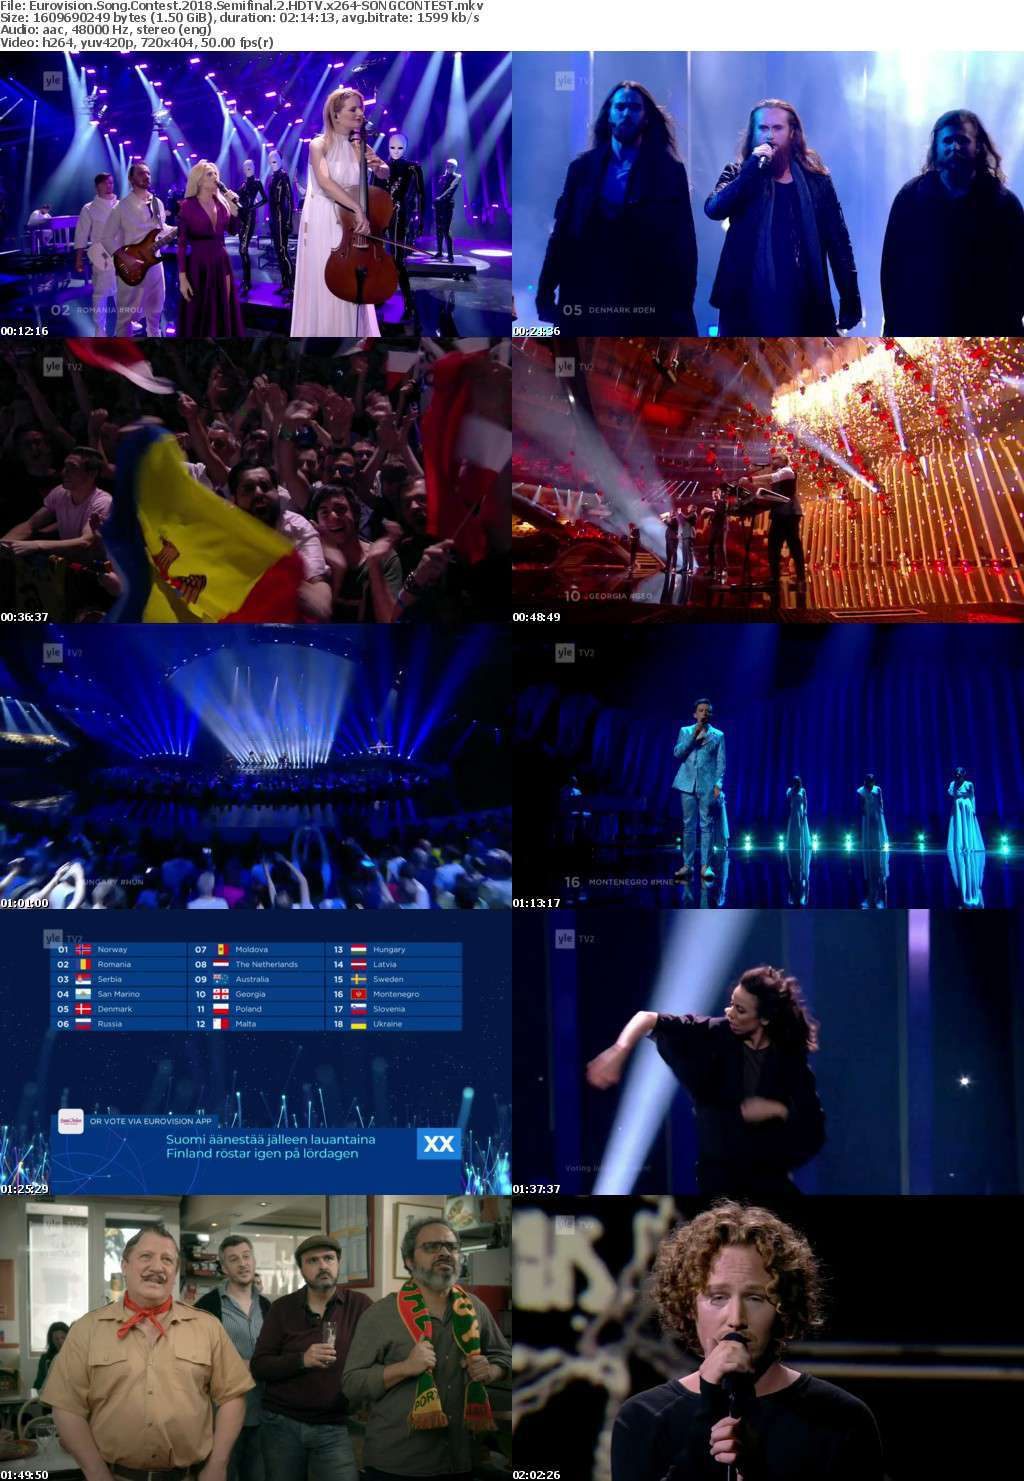 Eurovision Song Contest 2018 Semifinal 2 HDTV x264-SONGCONTEST